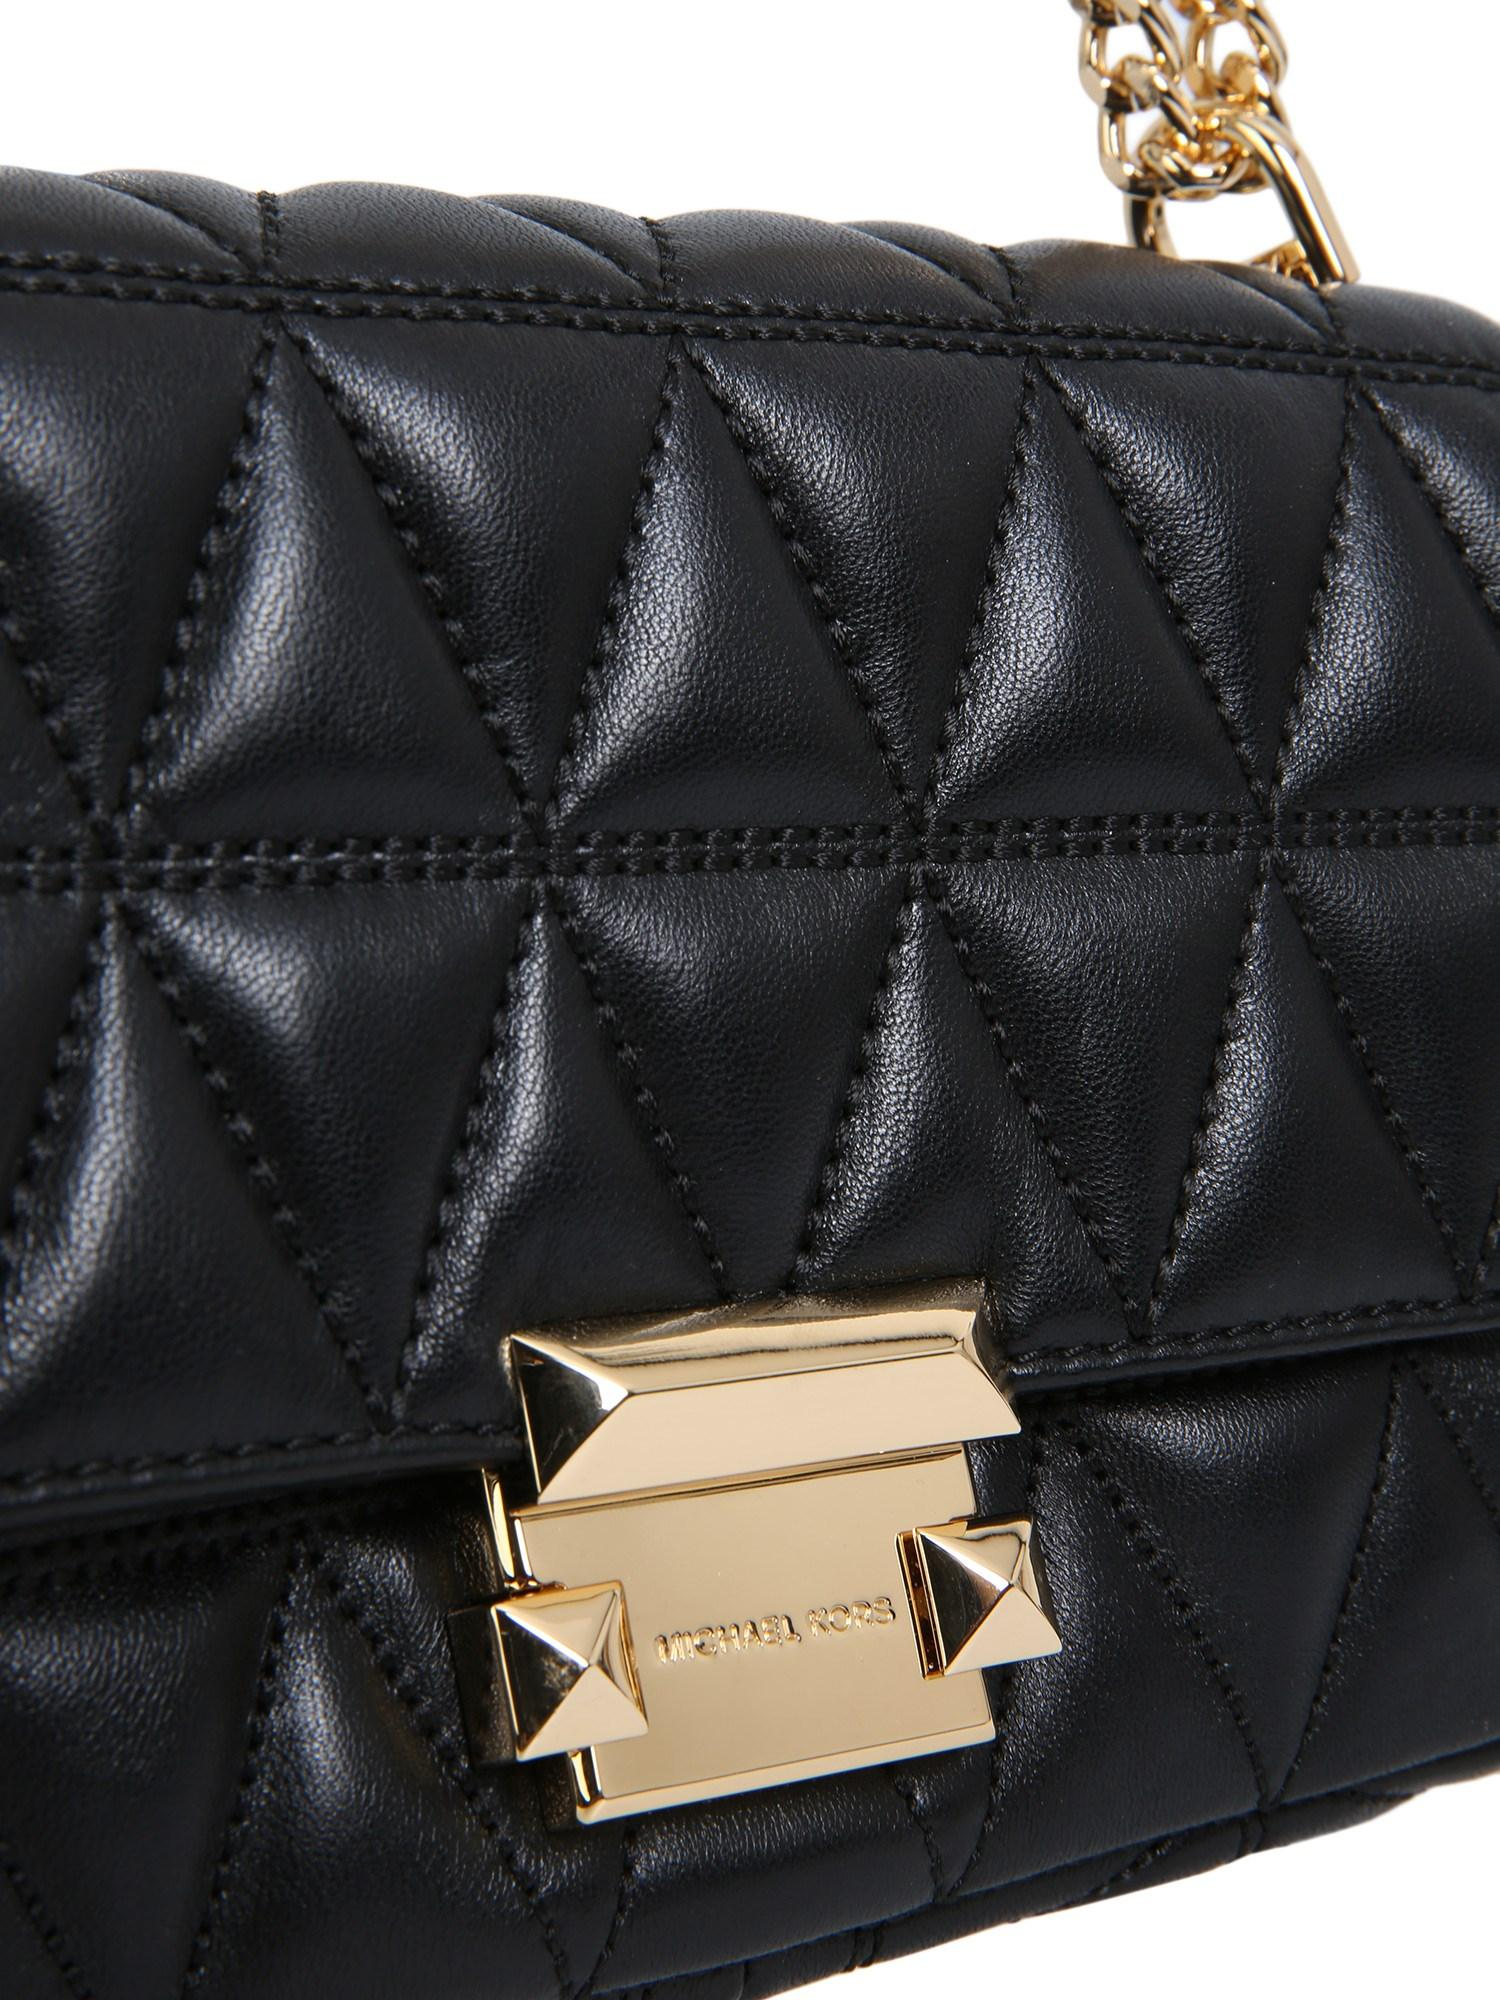 20ec71e7ac53 MICHAEL Michael Kors. Women s Black Sloan Small Messenger Bag In Quilted  Leather